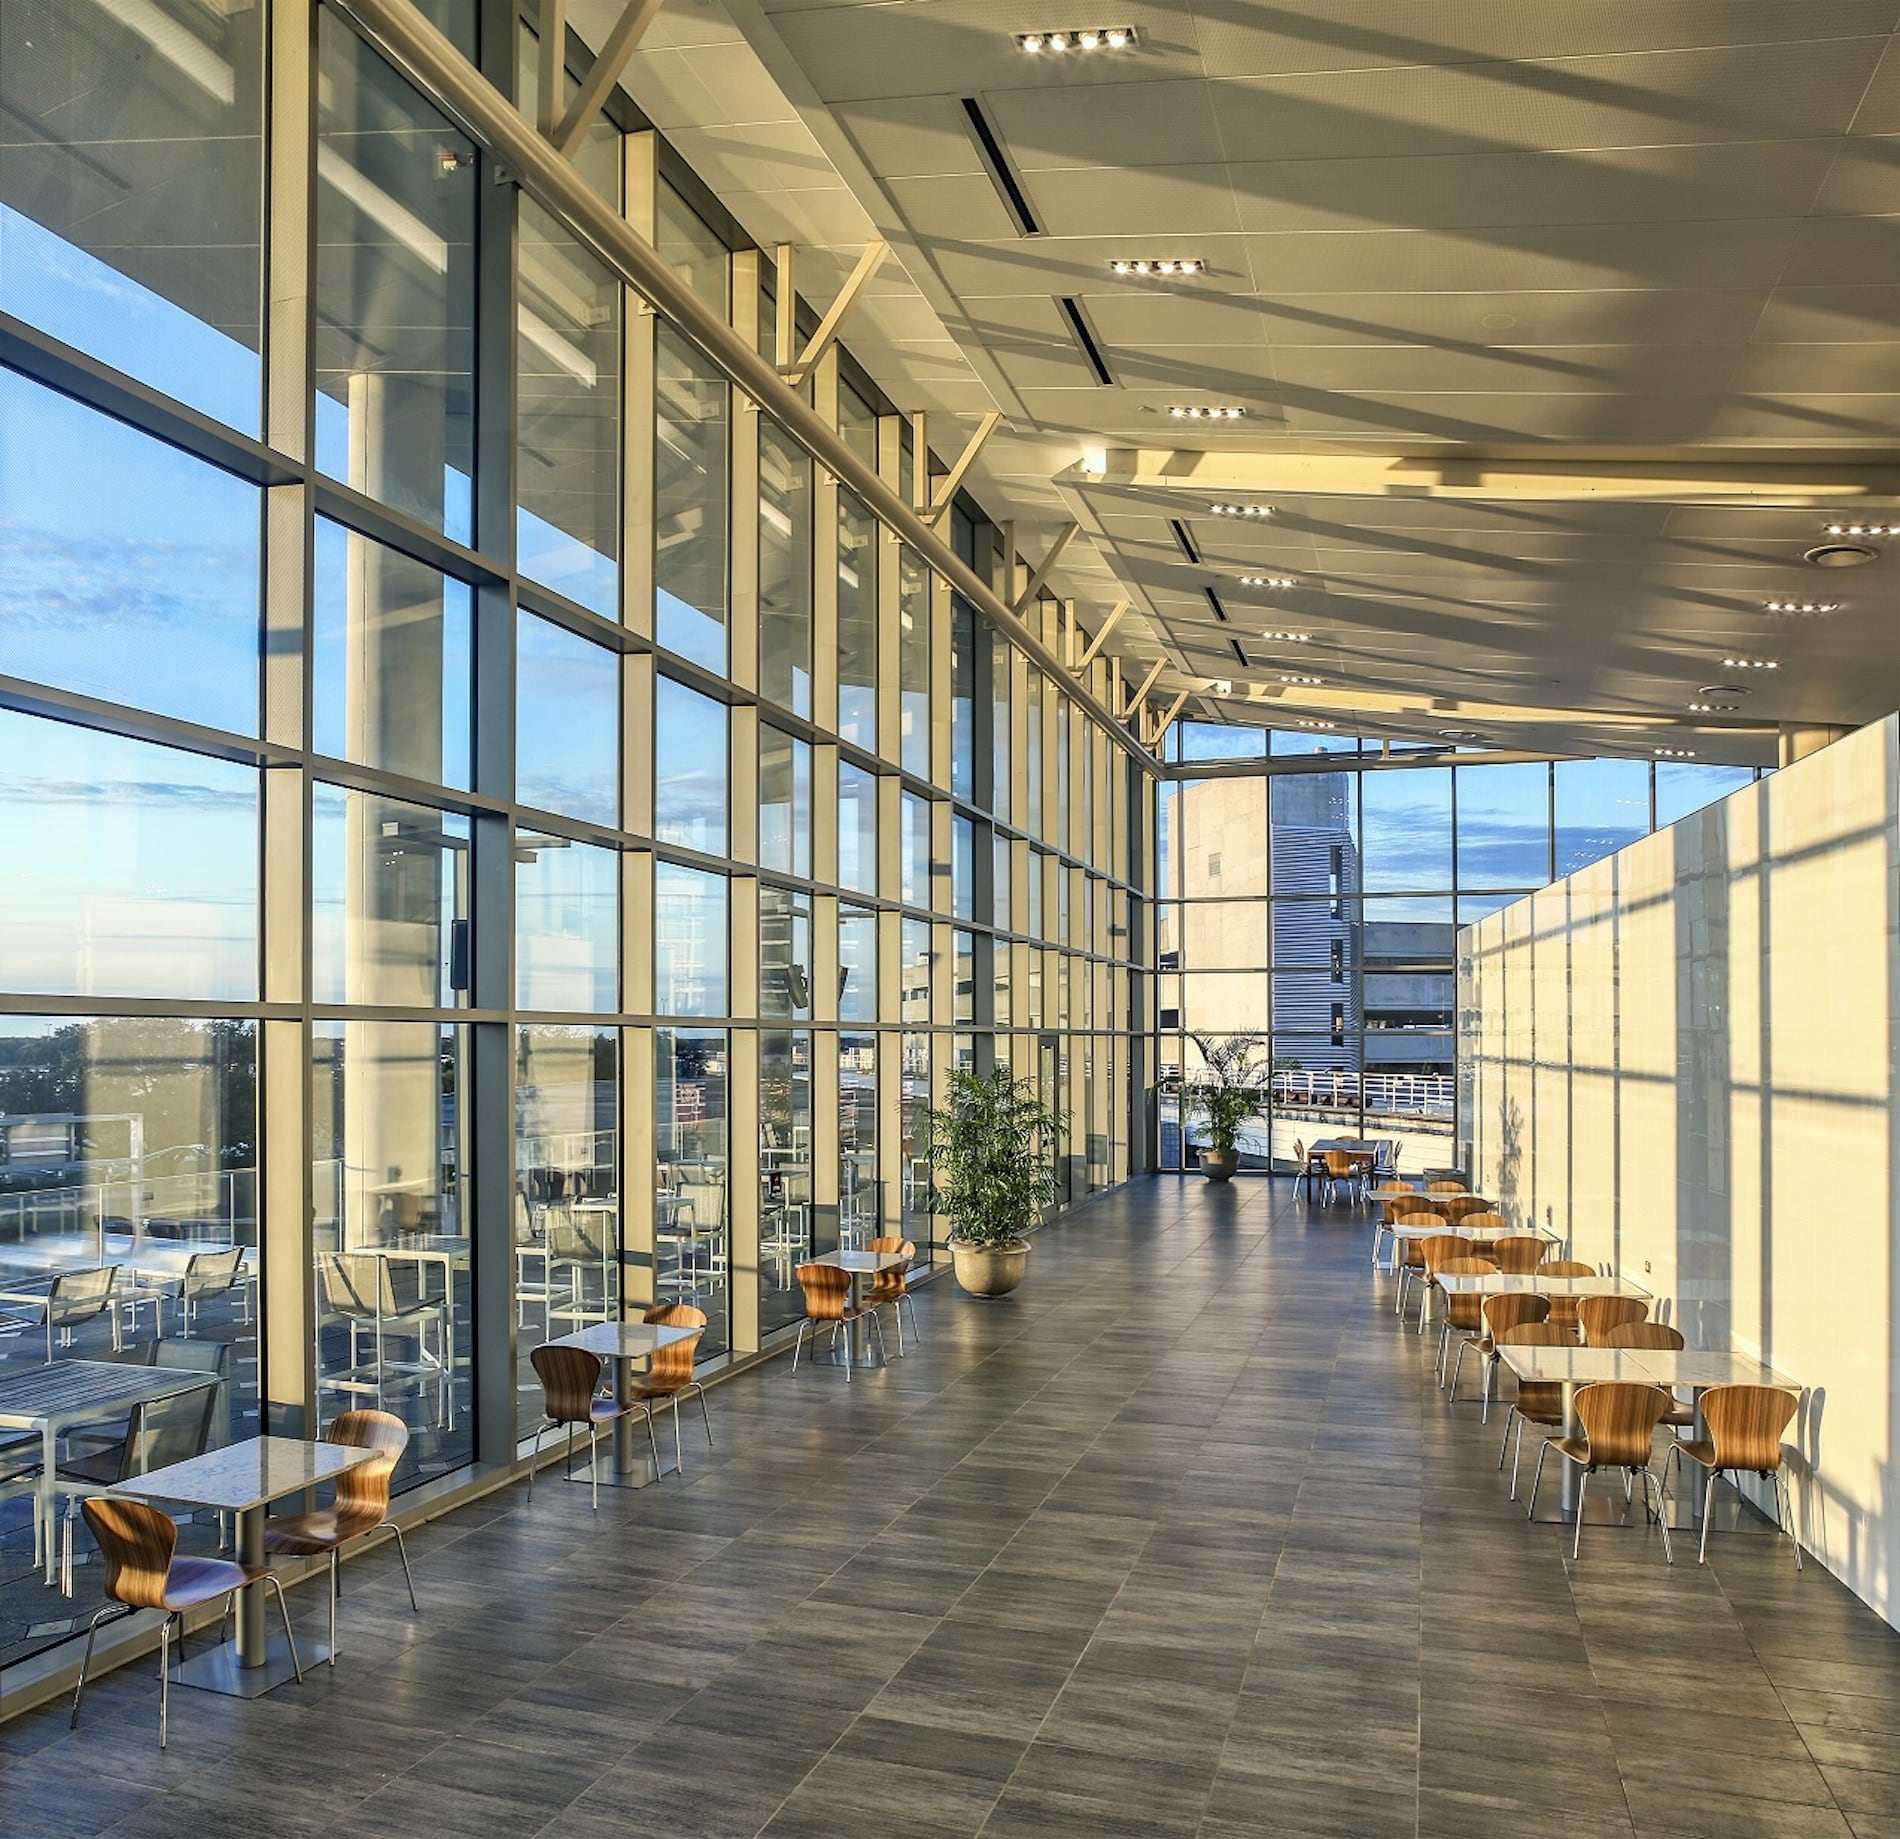 Tampa International Main Terminal Expansion and Concessions Redevelopment